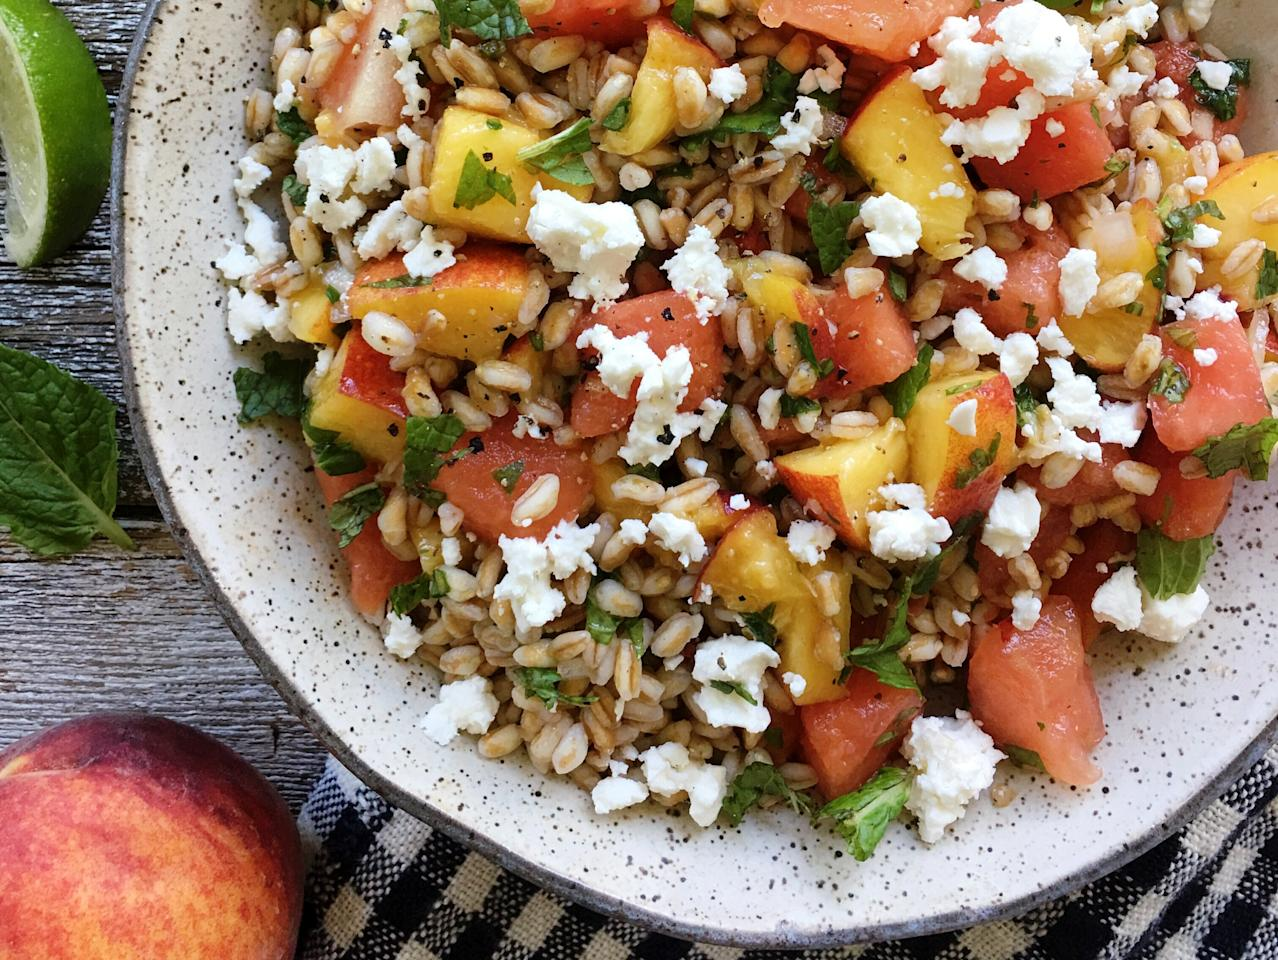 "<p>Toasting the farro before boiling it brings out an added layer of rich nuttiness to this hearty grain salad. Complemented by fresh herbs and sweet, juicy peaches and watermelon, this summertime side dish is the ultimate refreshing and nutritious bite you need. Serve it immediately, or let the flavors meld in the refrigerator for a couple hours (or overnight) and enjoy it cold.</p> <p><a href=""https://www.myrecipes.com/recipe/toasted-farro-salad-watermelon-peaches"">Toasted Farro Salad with Watermelon and Peaches Recipe</a></p>"